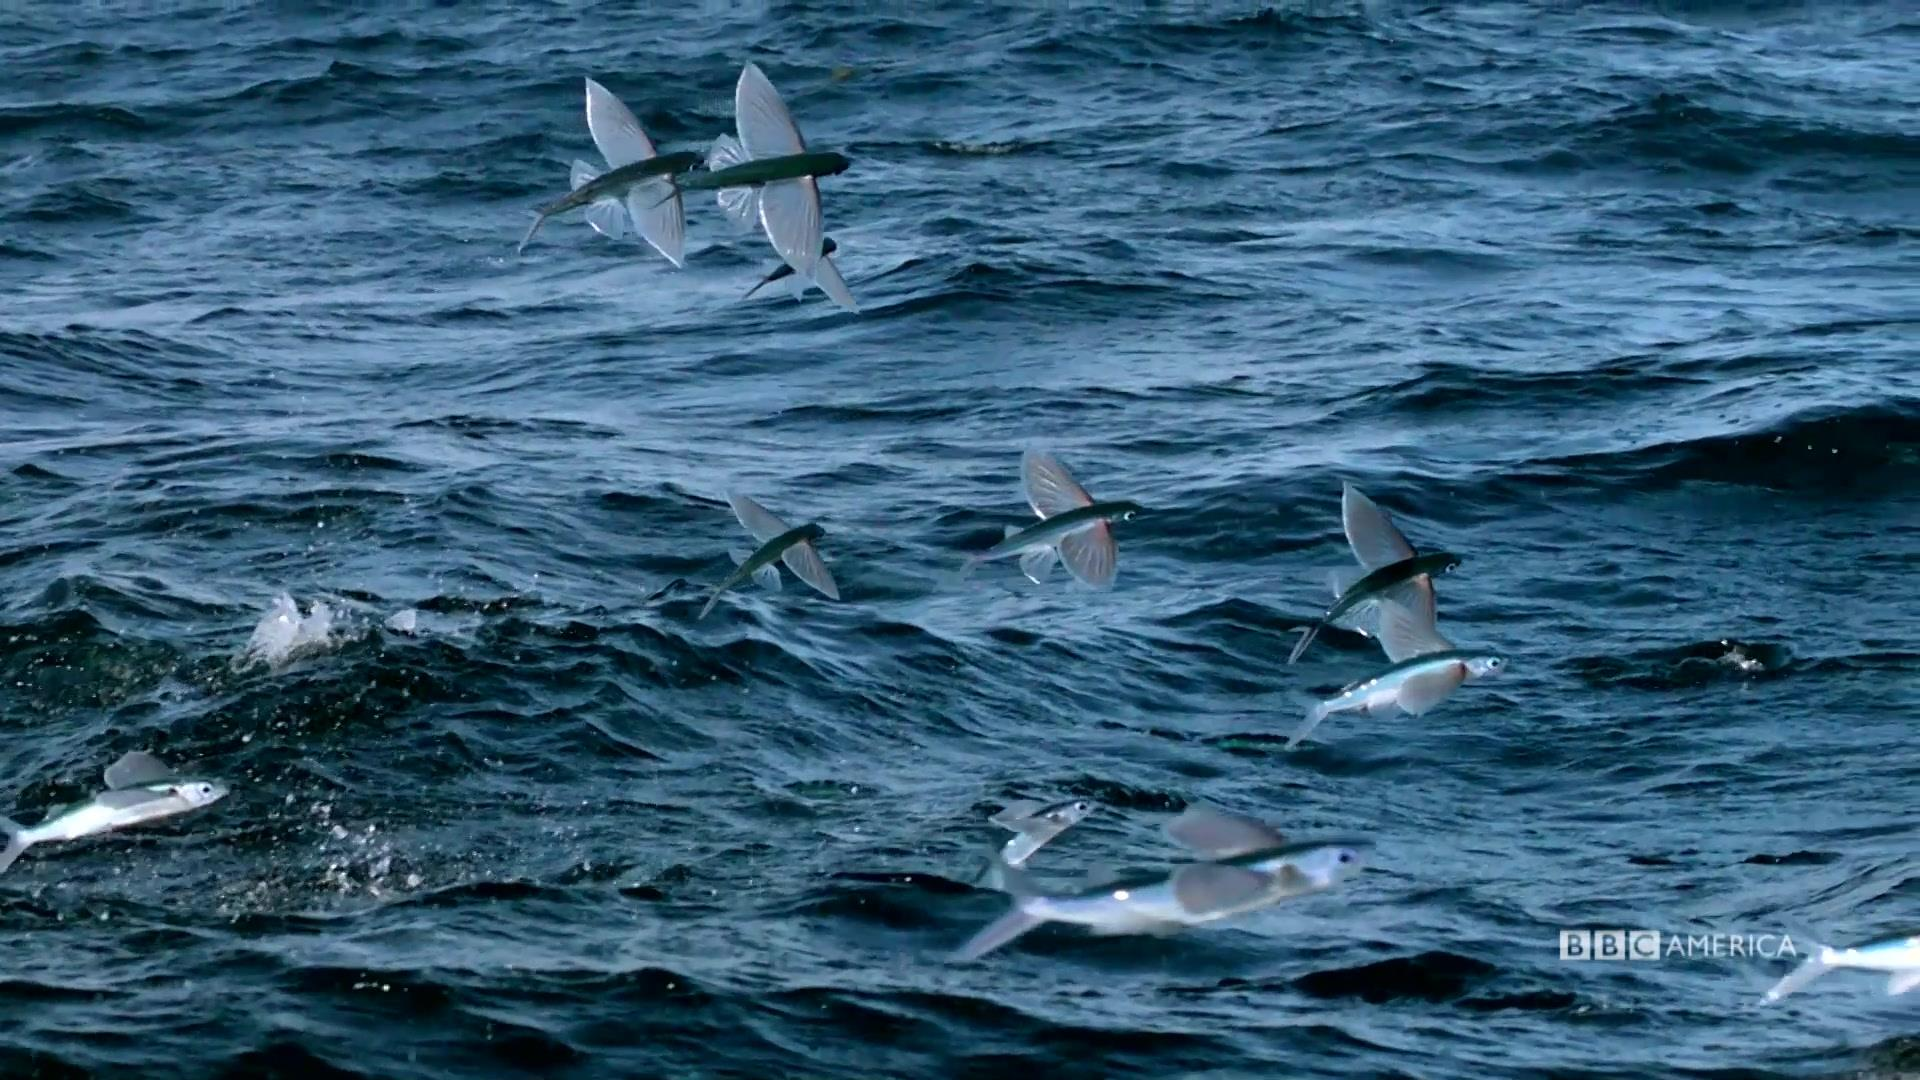 Sneak peek flying fish the hunt bbc america for Flying fish images